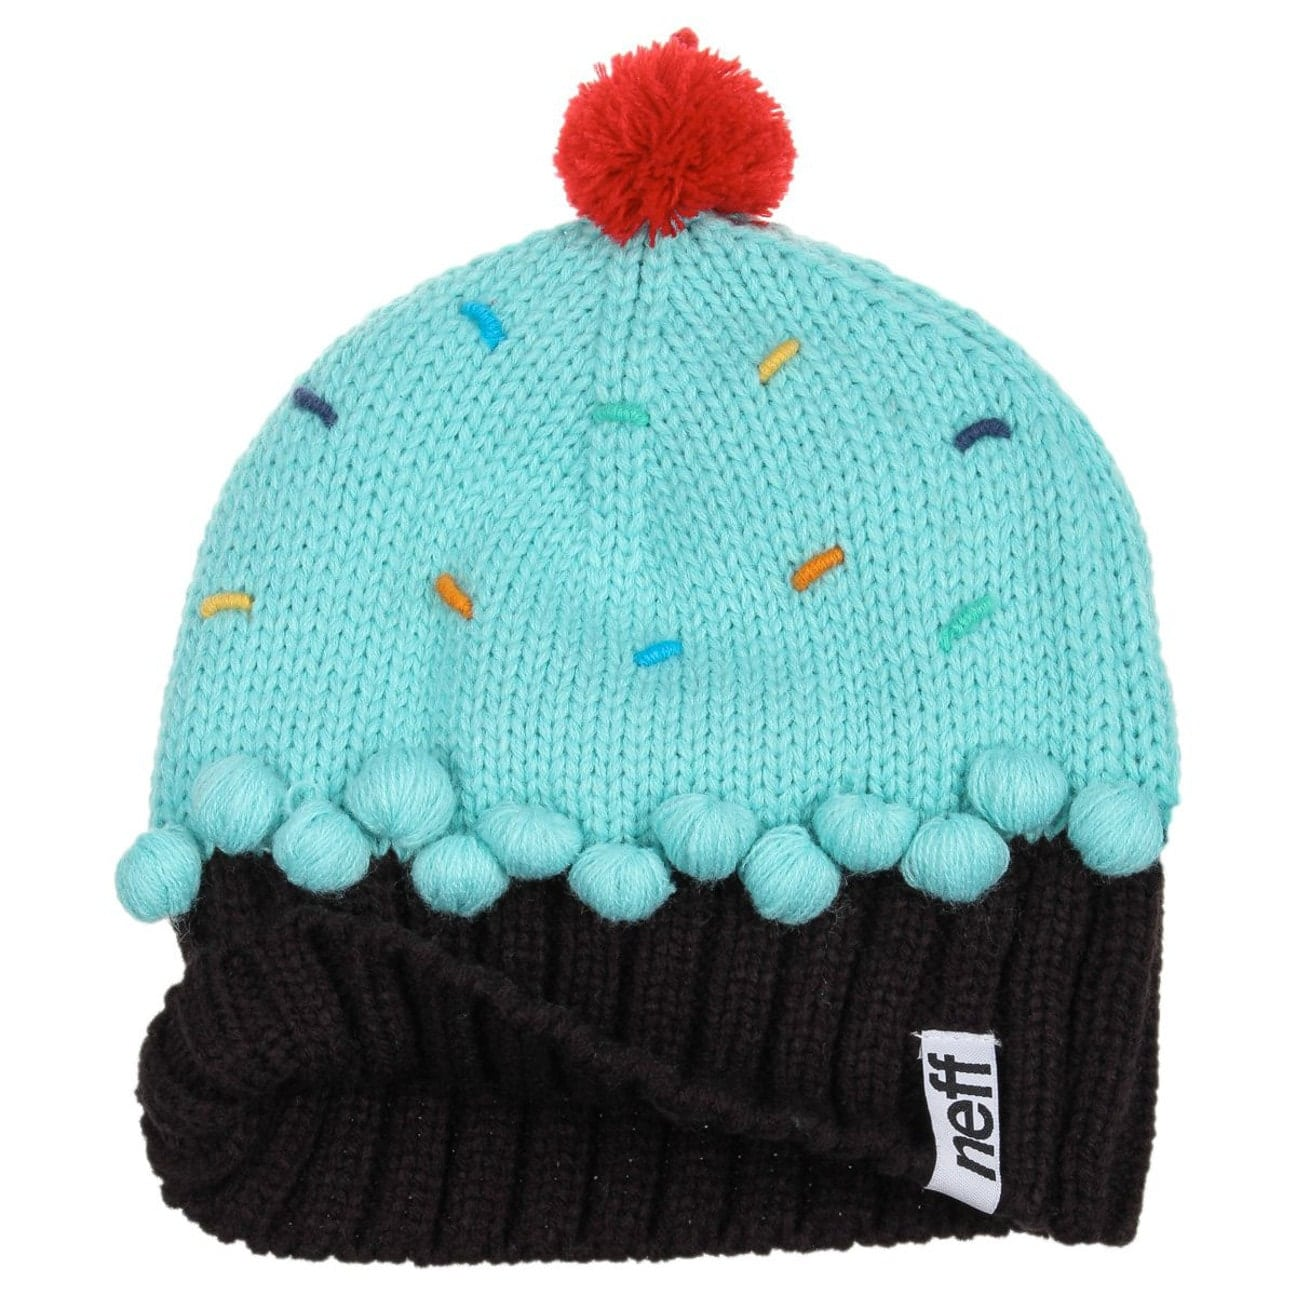 167381d5c87 Cupcake Beanie by neff - rose 2 · Cupcake Beanie by neff - turquoise 2 ...